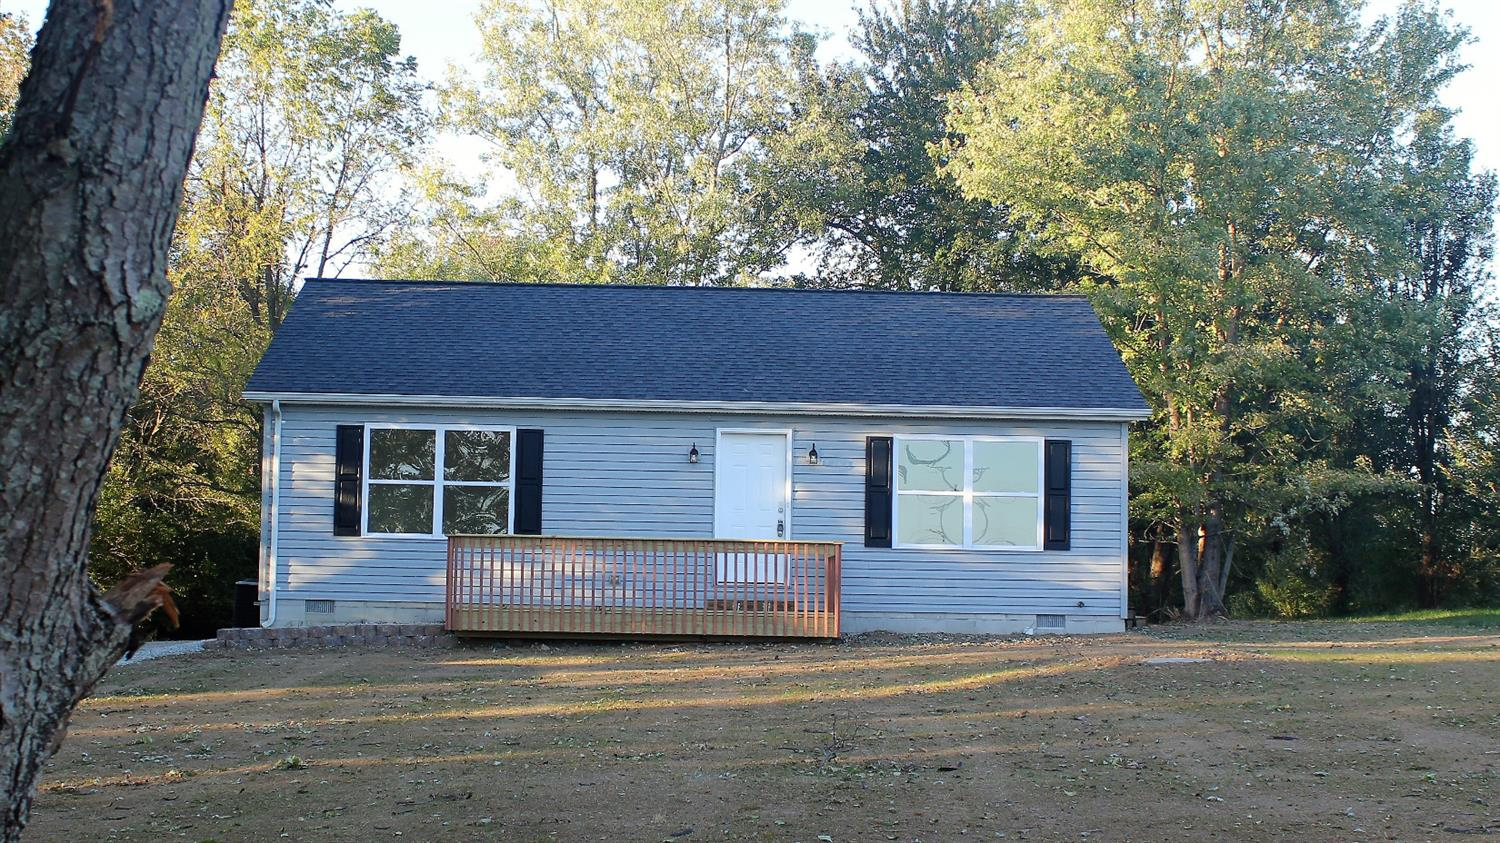 Property for sale at 4224 W Us Rt 22 & 3, Adams Twp,  OH 45177